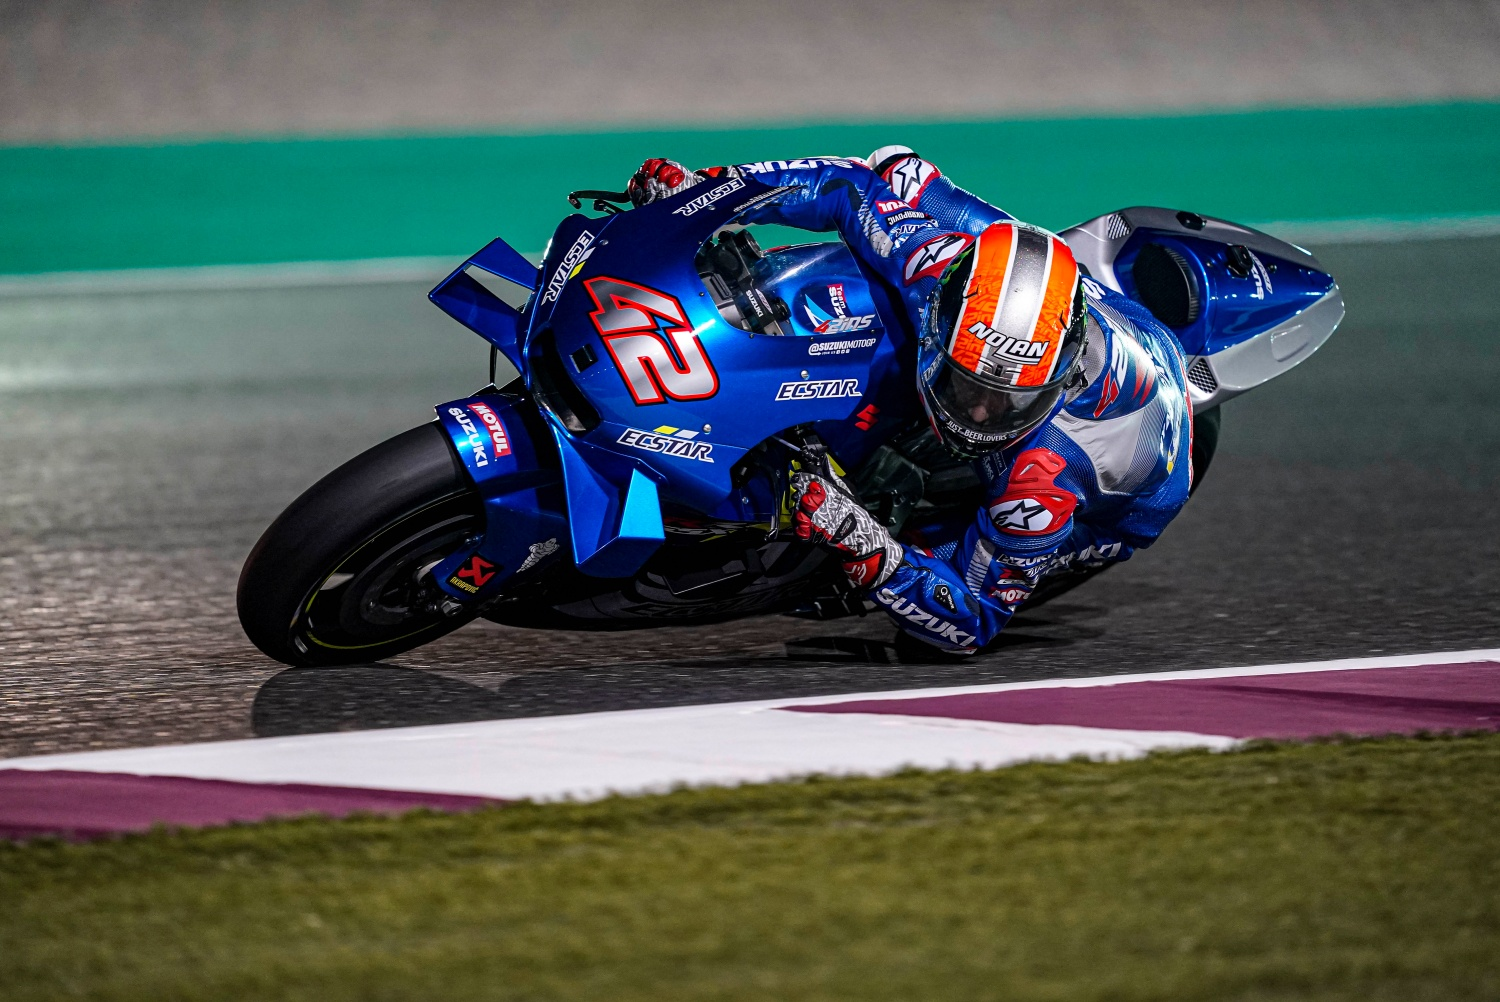 SUZUKI AND RINS EXTEND THEIR PARTNERSHIP FOR 2021 AND 2022